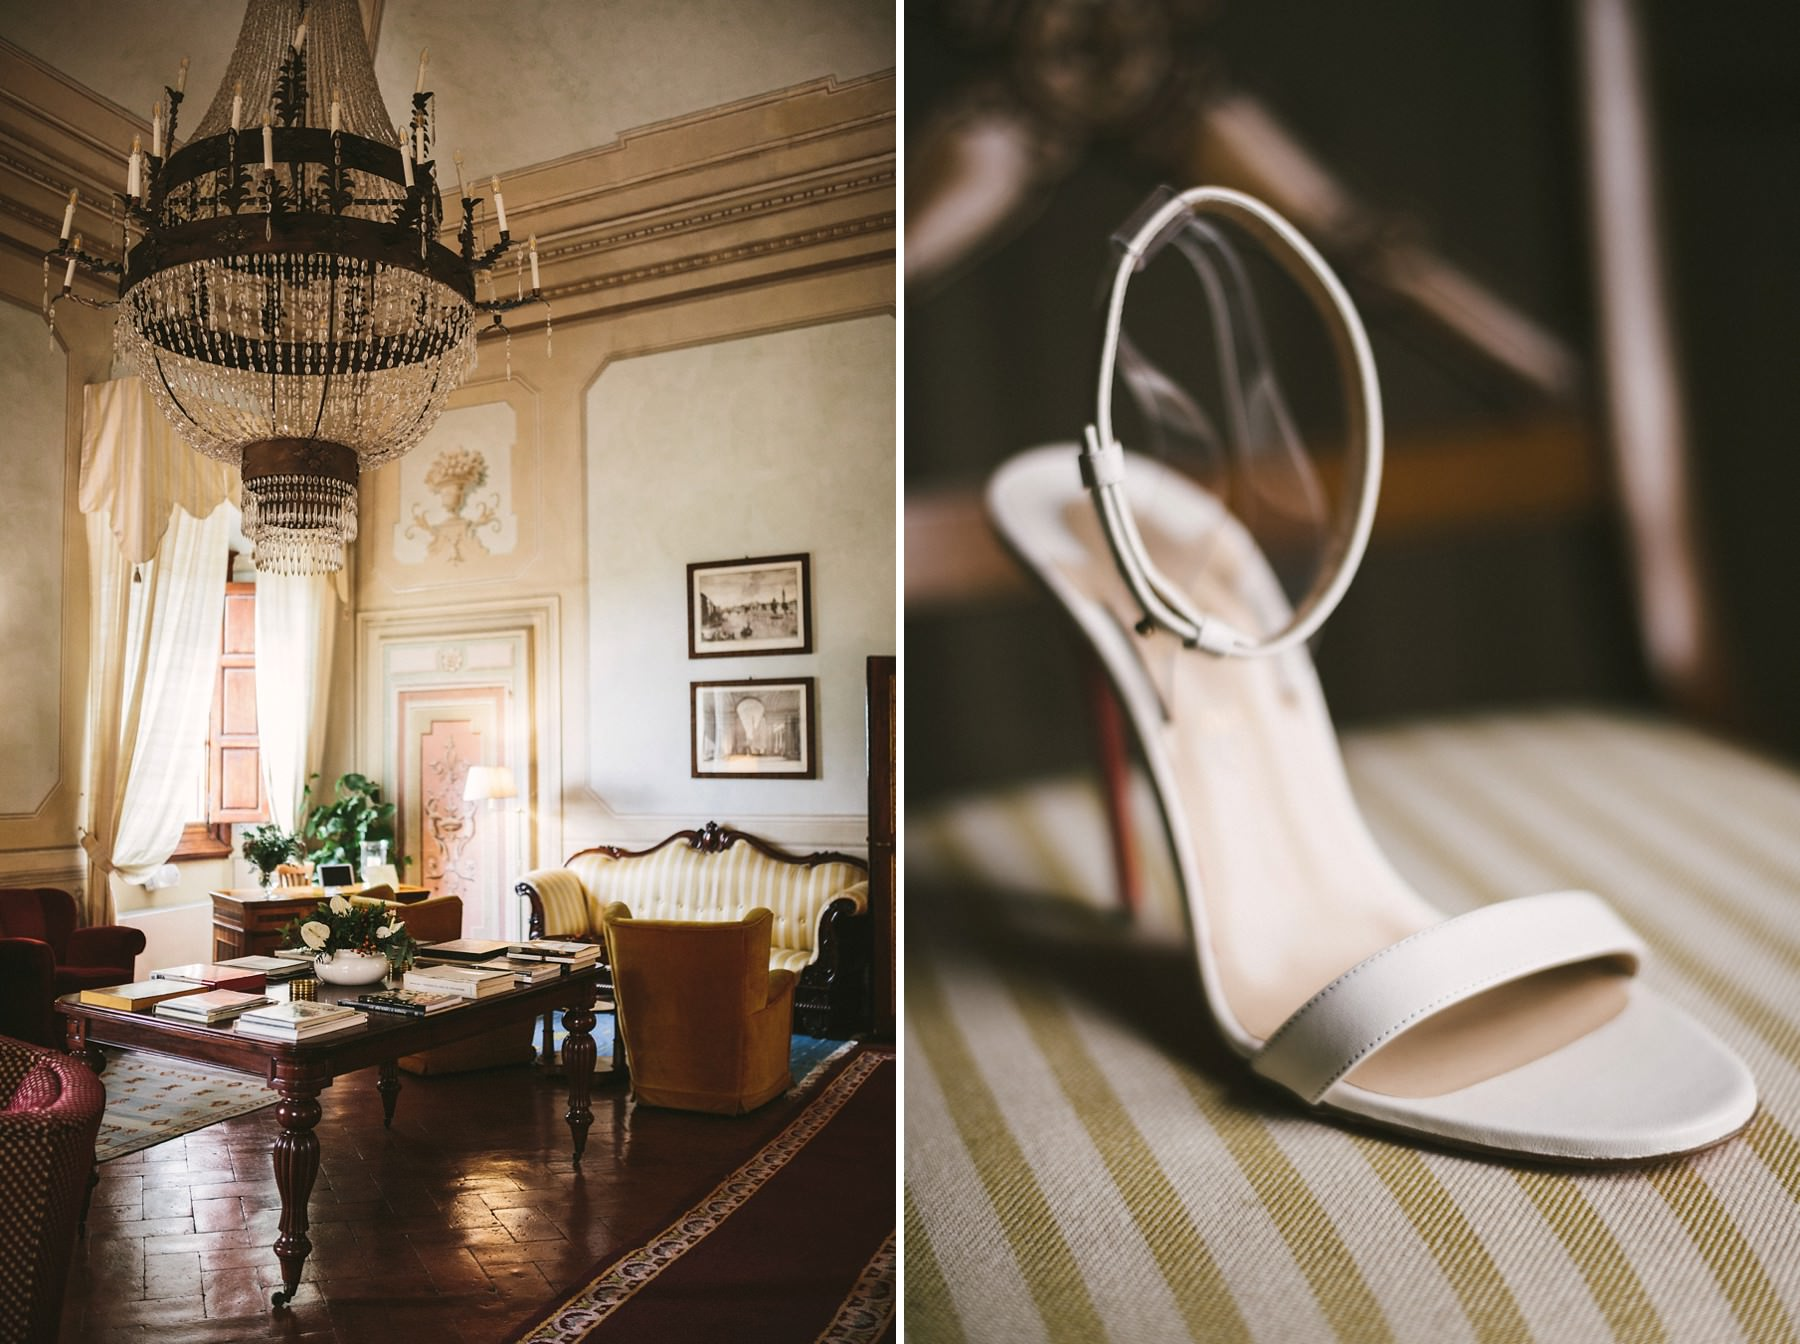 Sophie & Joe's destination wedding in Chianti